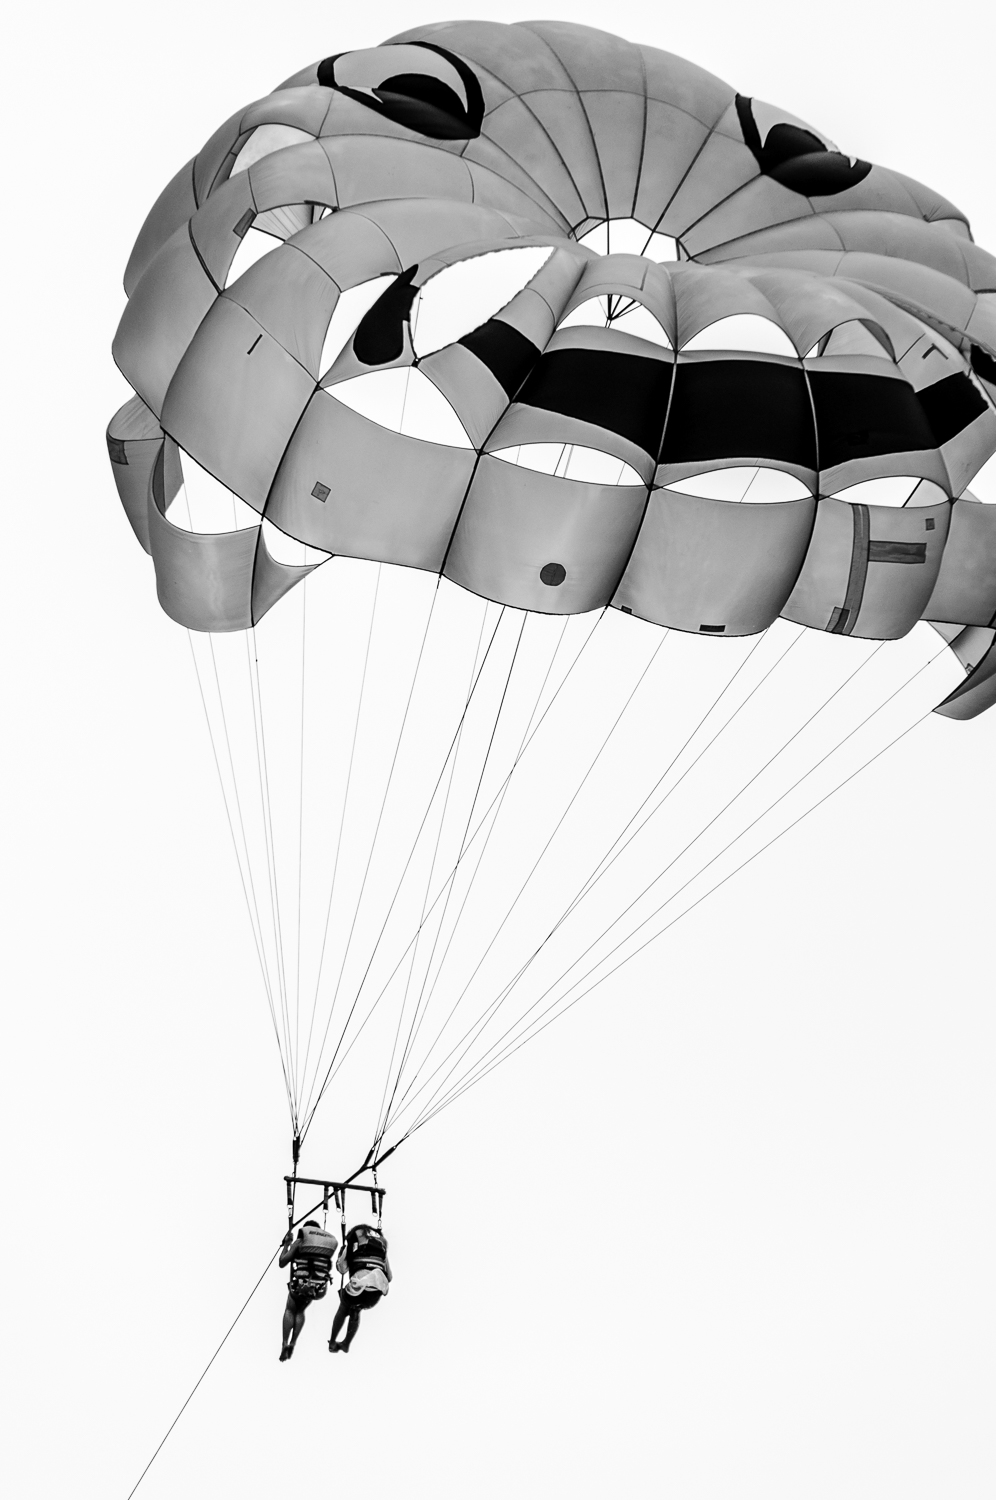 2 Women Paragliding With Smiley Face - In Black And White